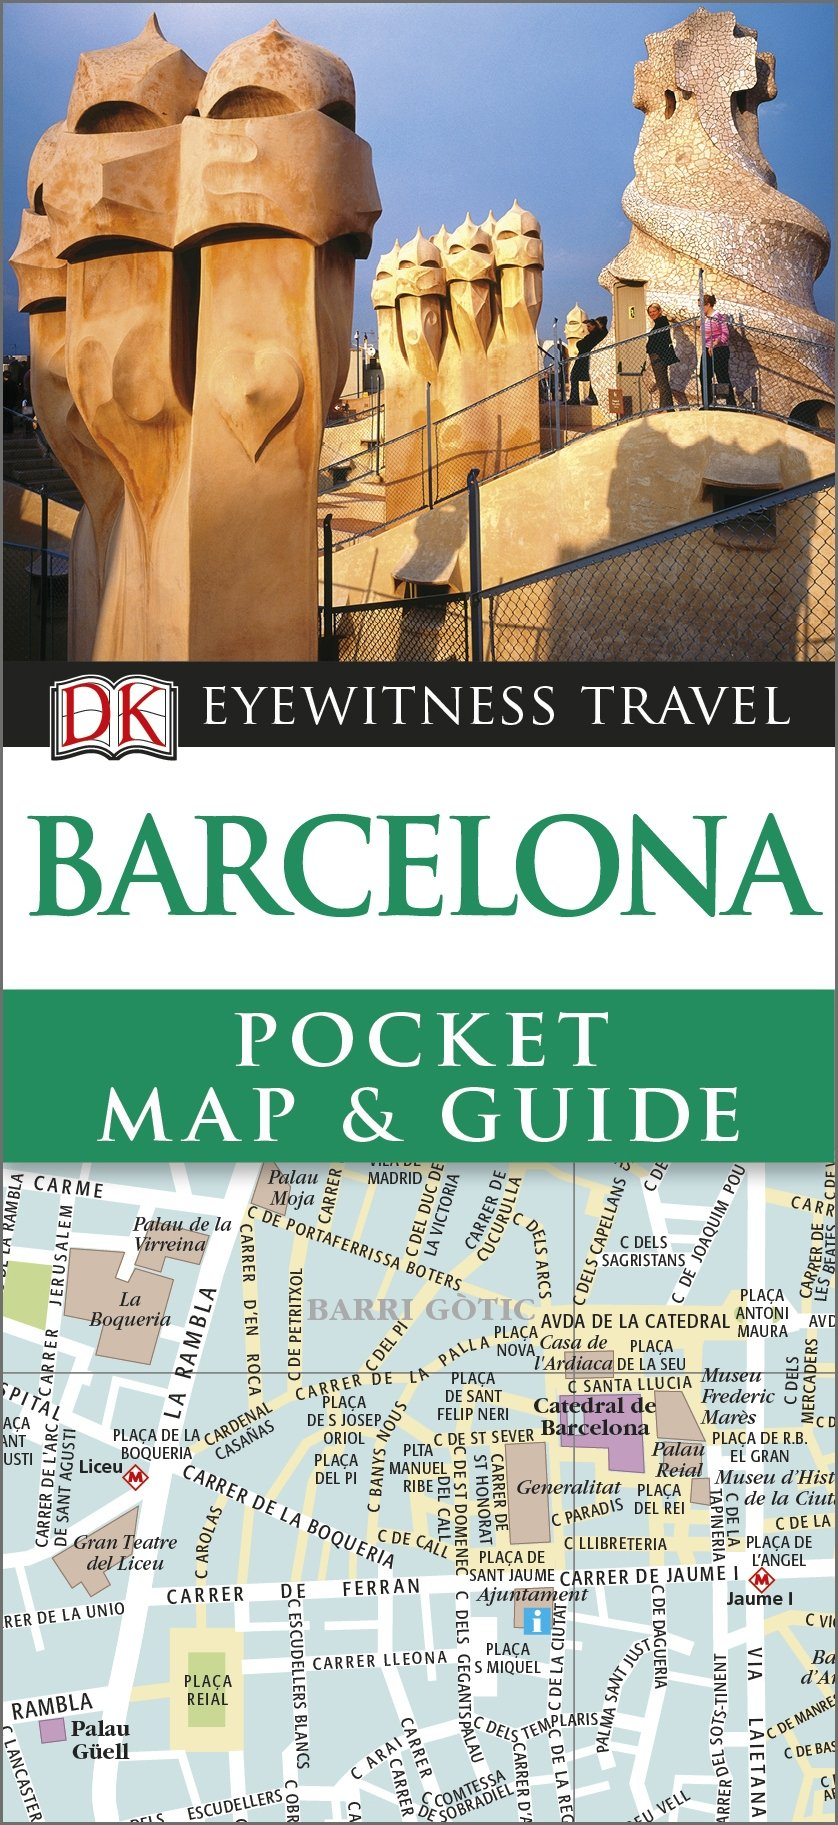 Barcelona Pocket Map and Guide (DK Eyewitness Travel Guide)